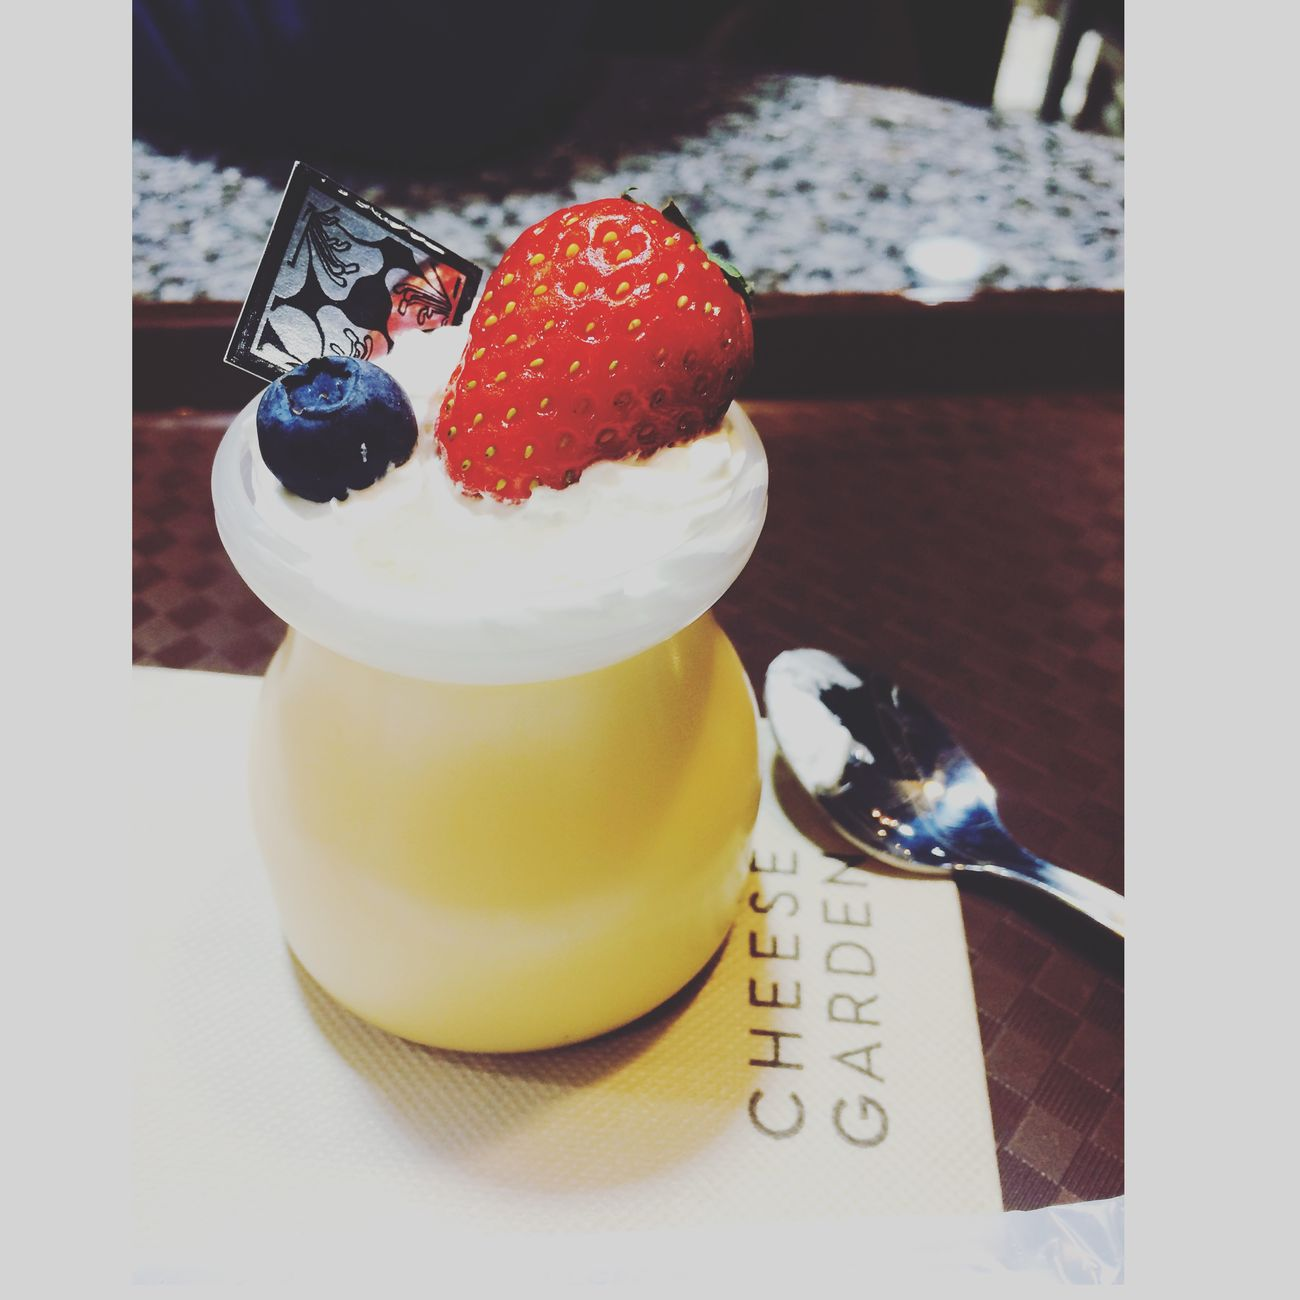 Yummy cheese pudding 😋 Cheese! プリン Cheese Garden Enjoying Life Check This Out :))✌️✌️😎✌️✌️